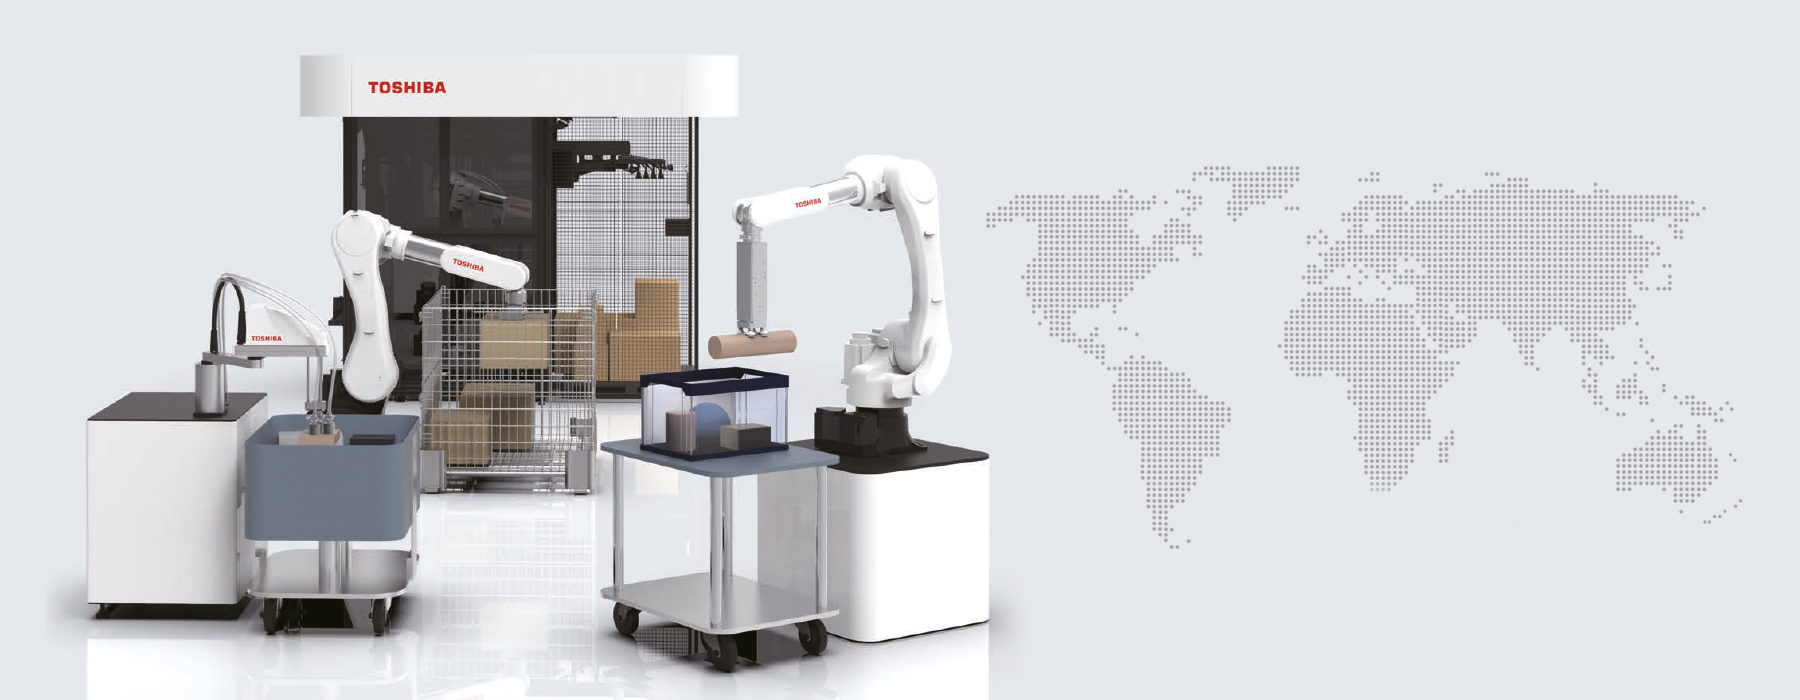 The robot is not heavy: how mail logistics becomes smarter than